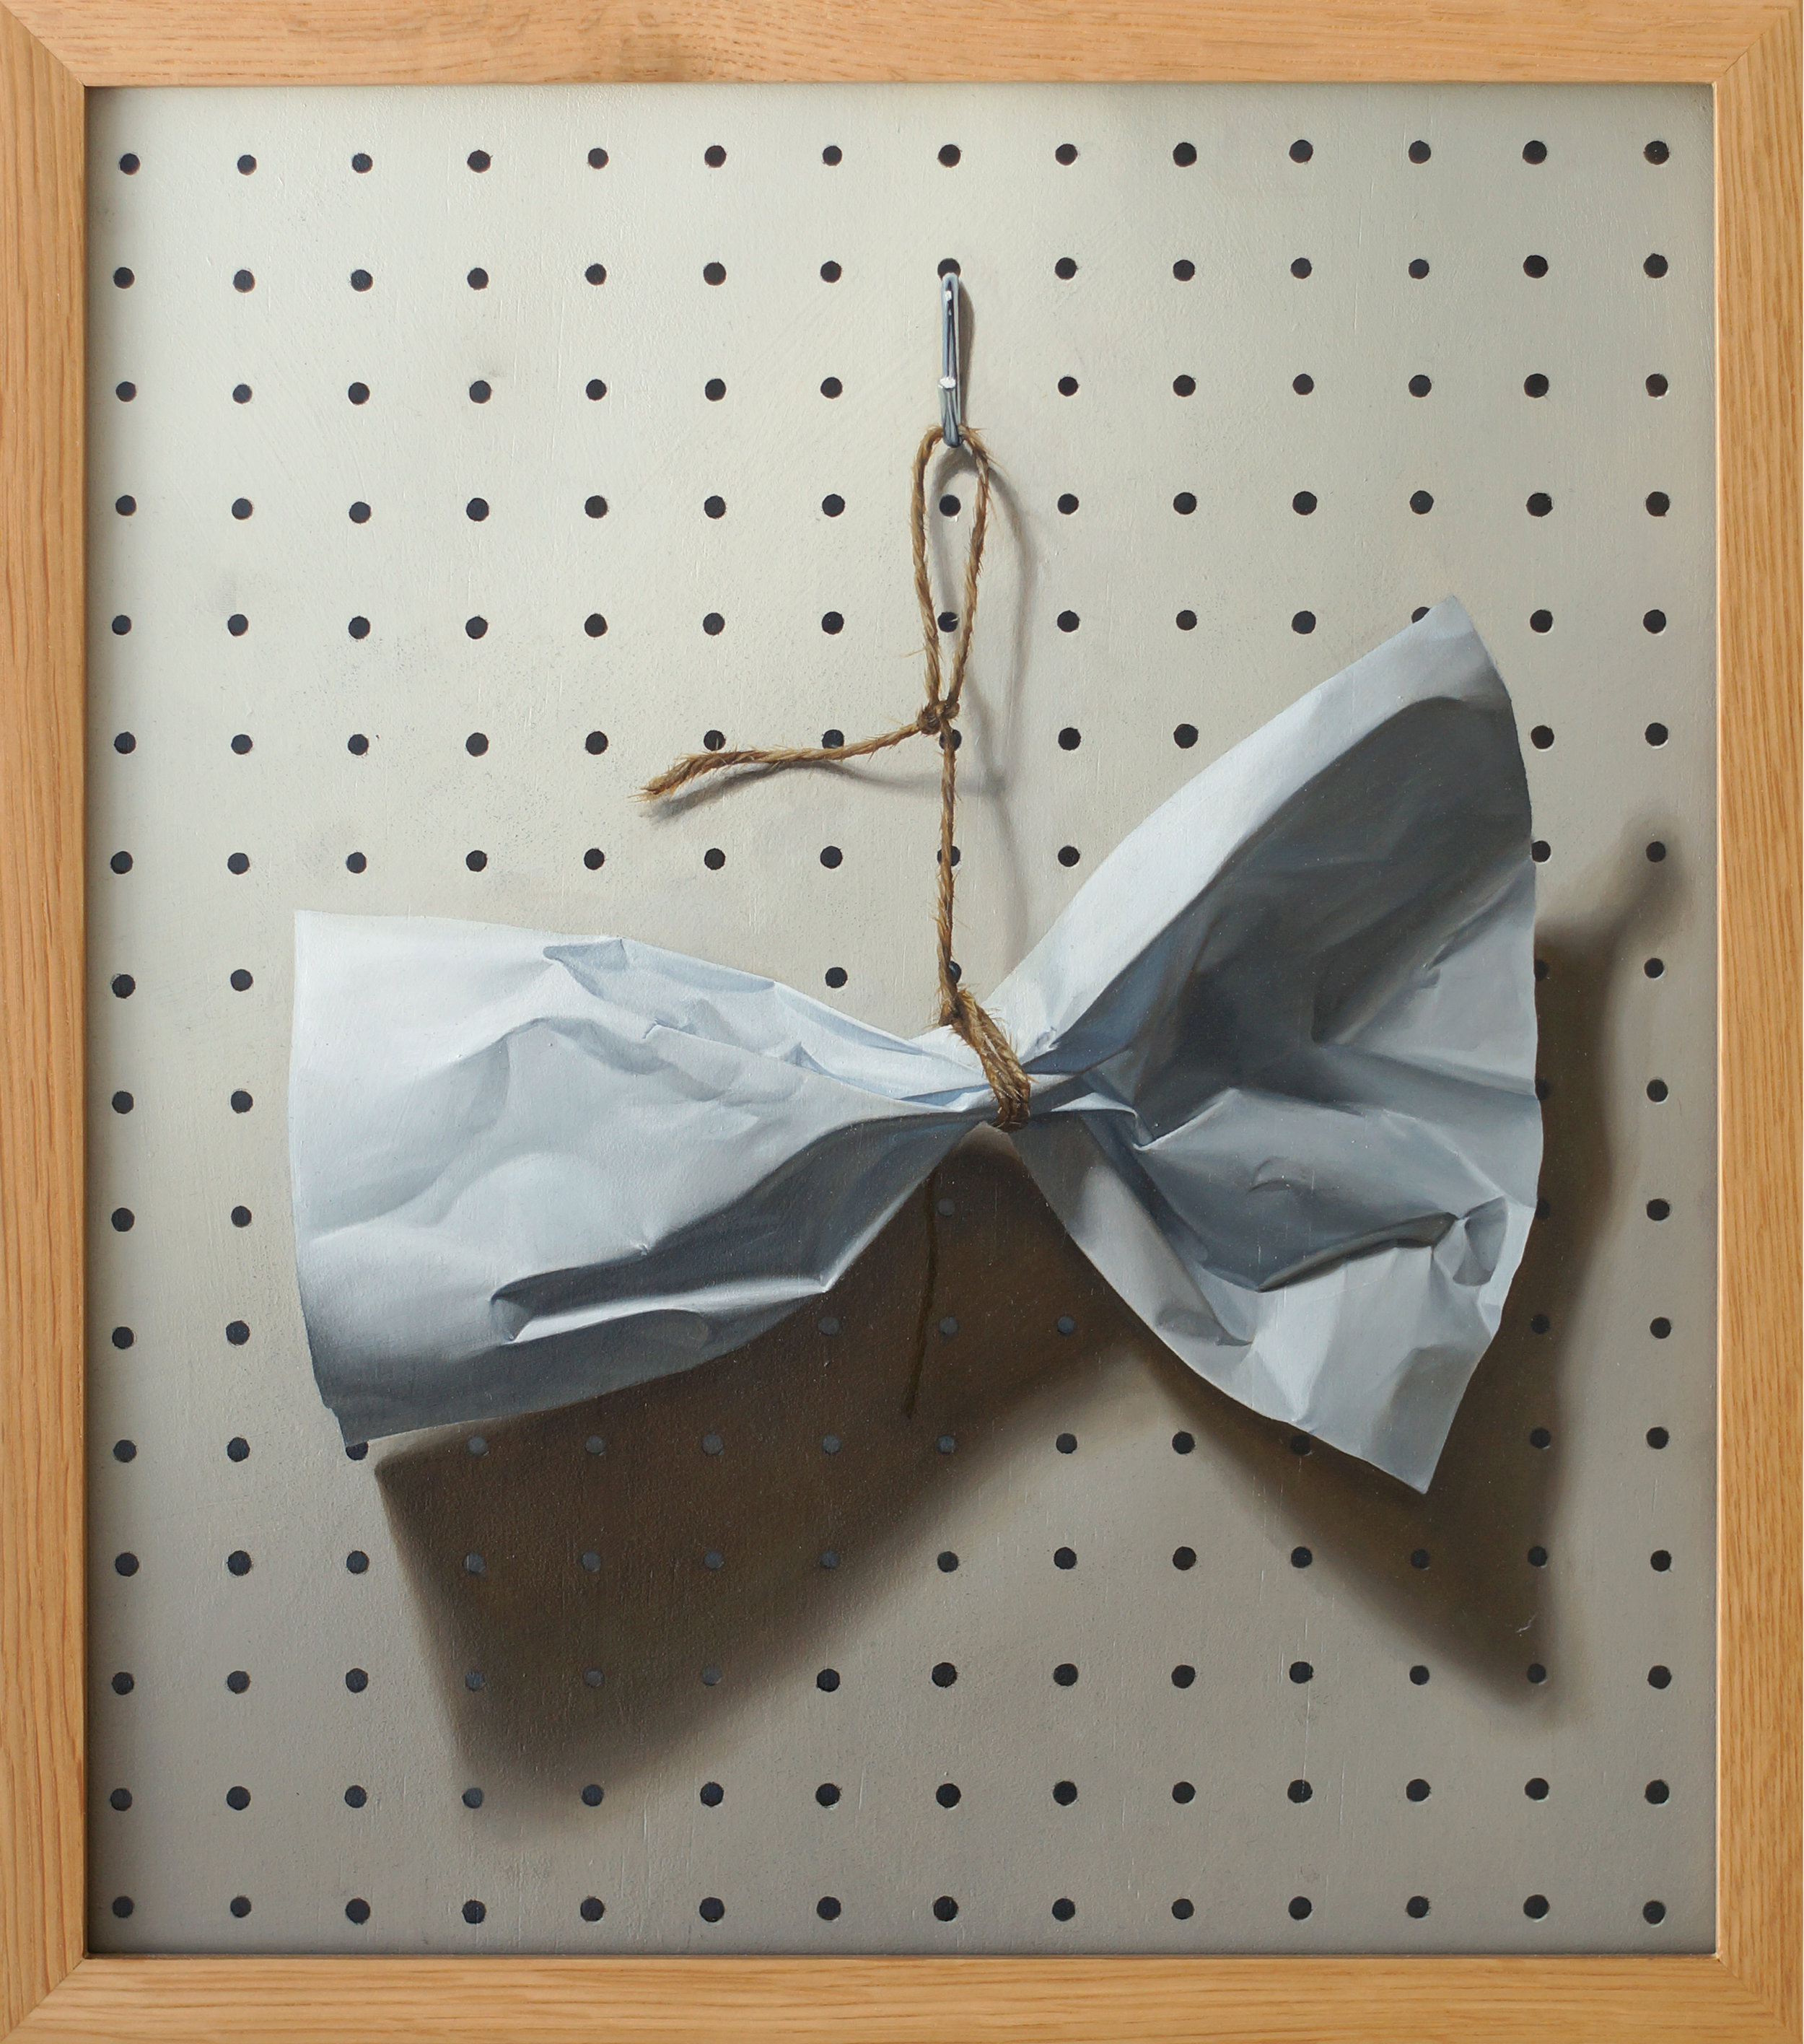 Bowtie - Oil on Board 38.4 x 43.5cm (framed) 2015.jpg